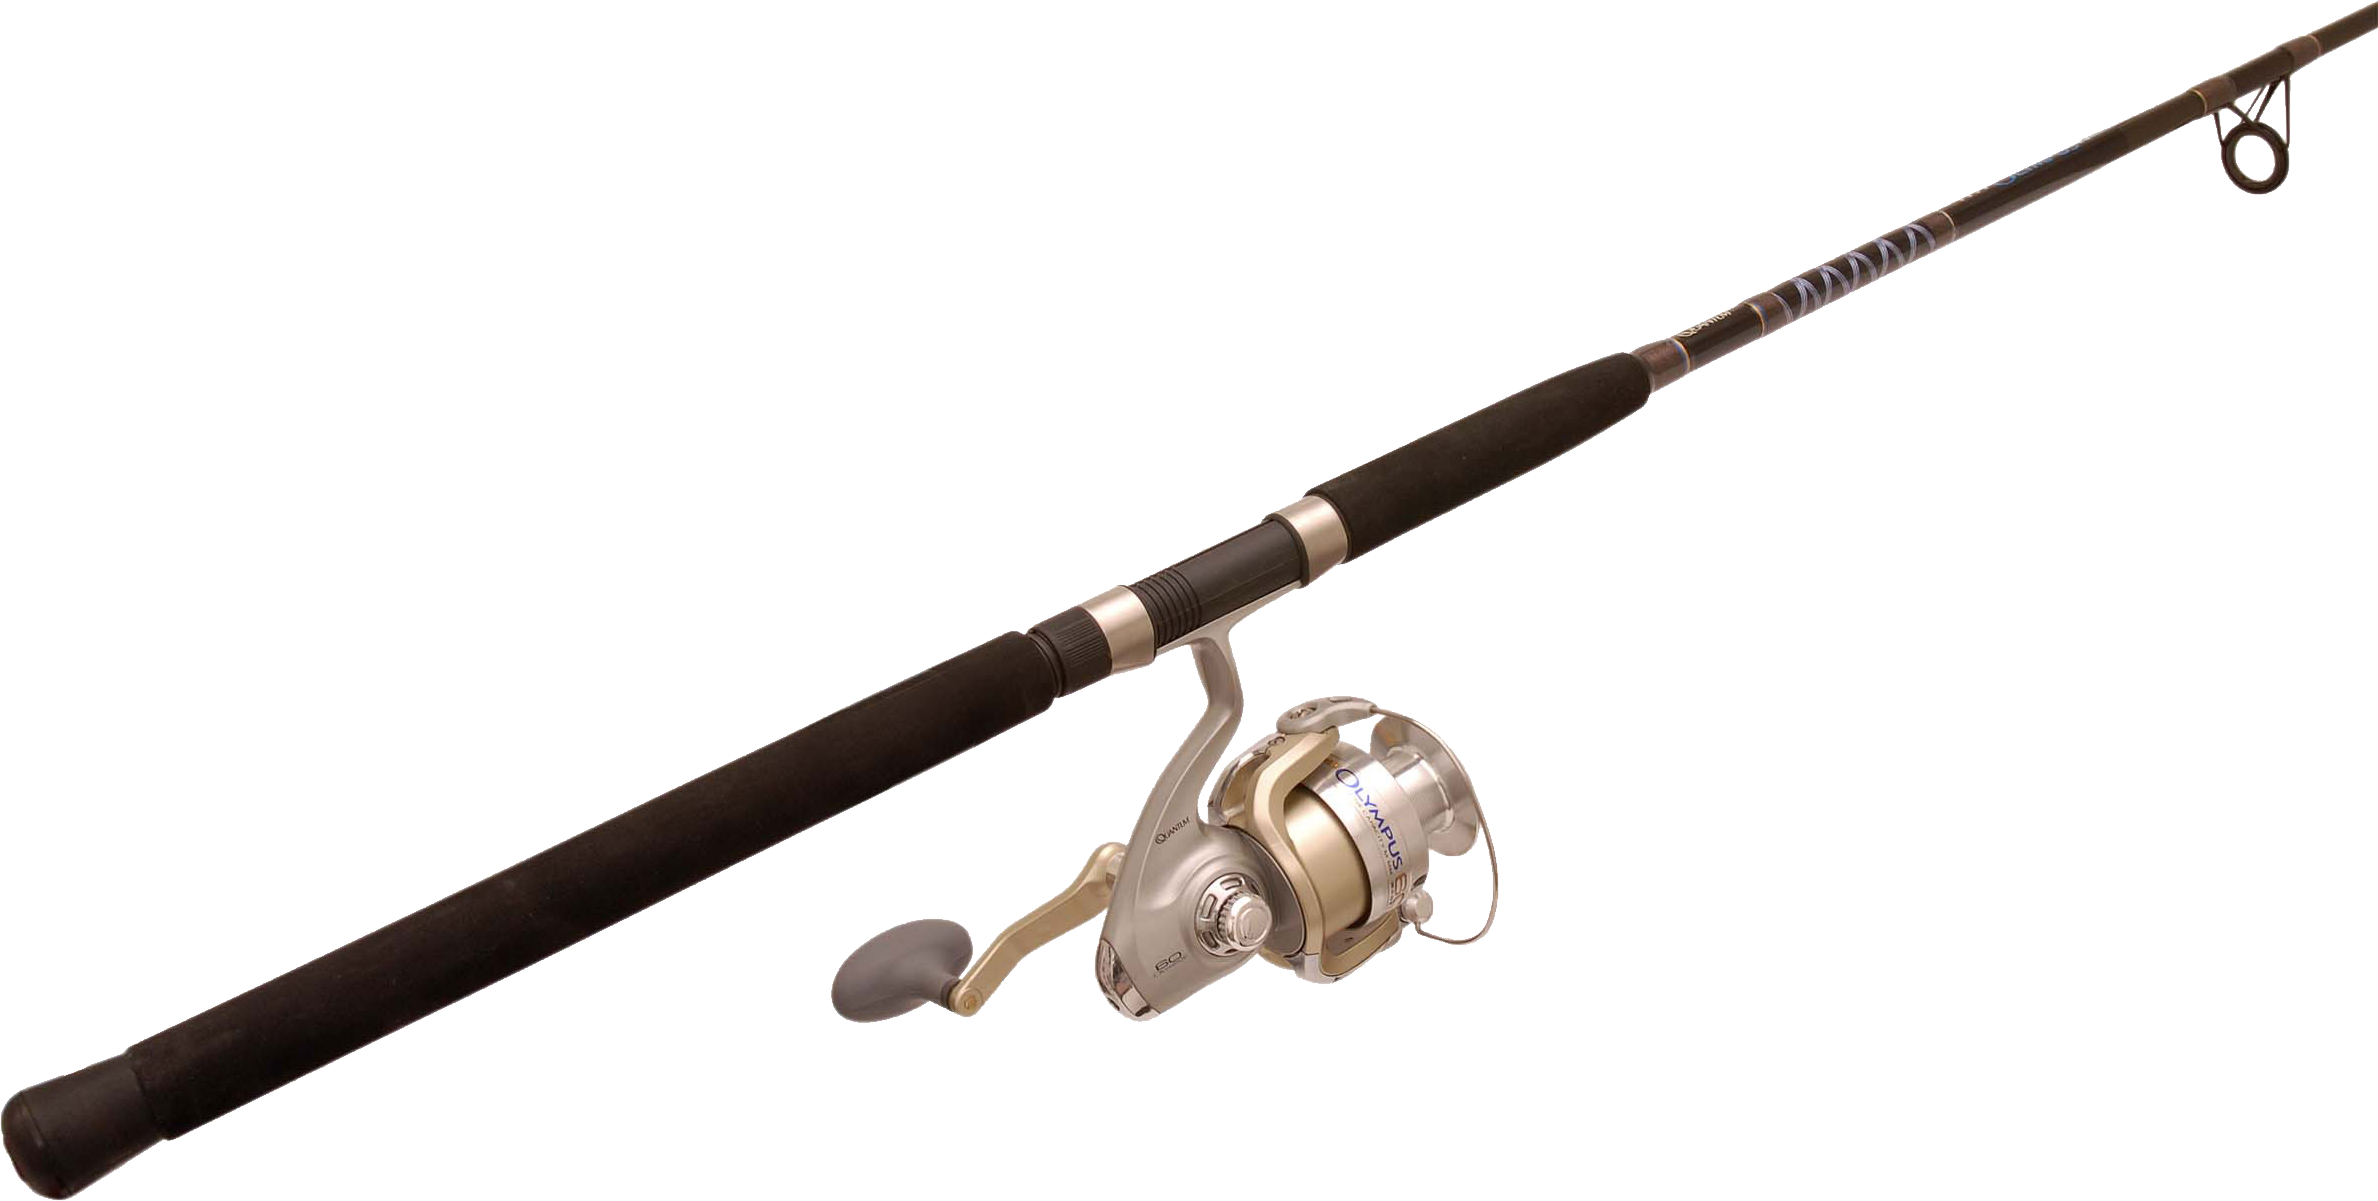 Fishing clipart fishing reel. Pole rod image clipartix